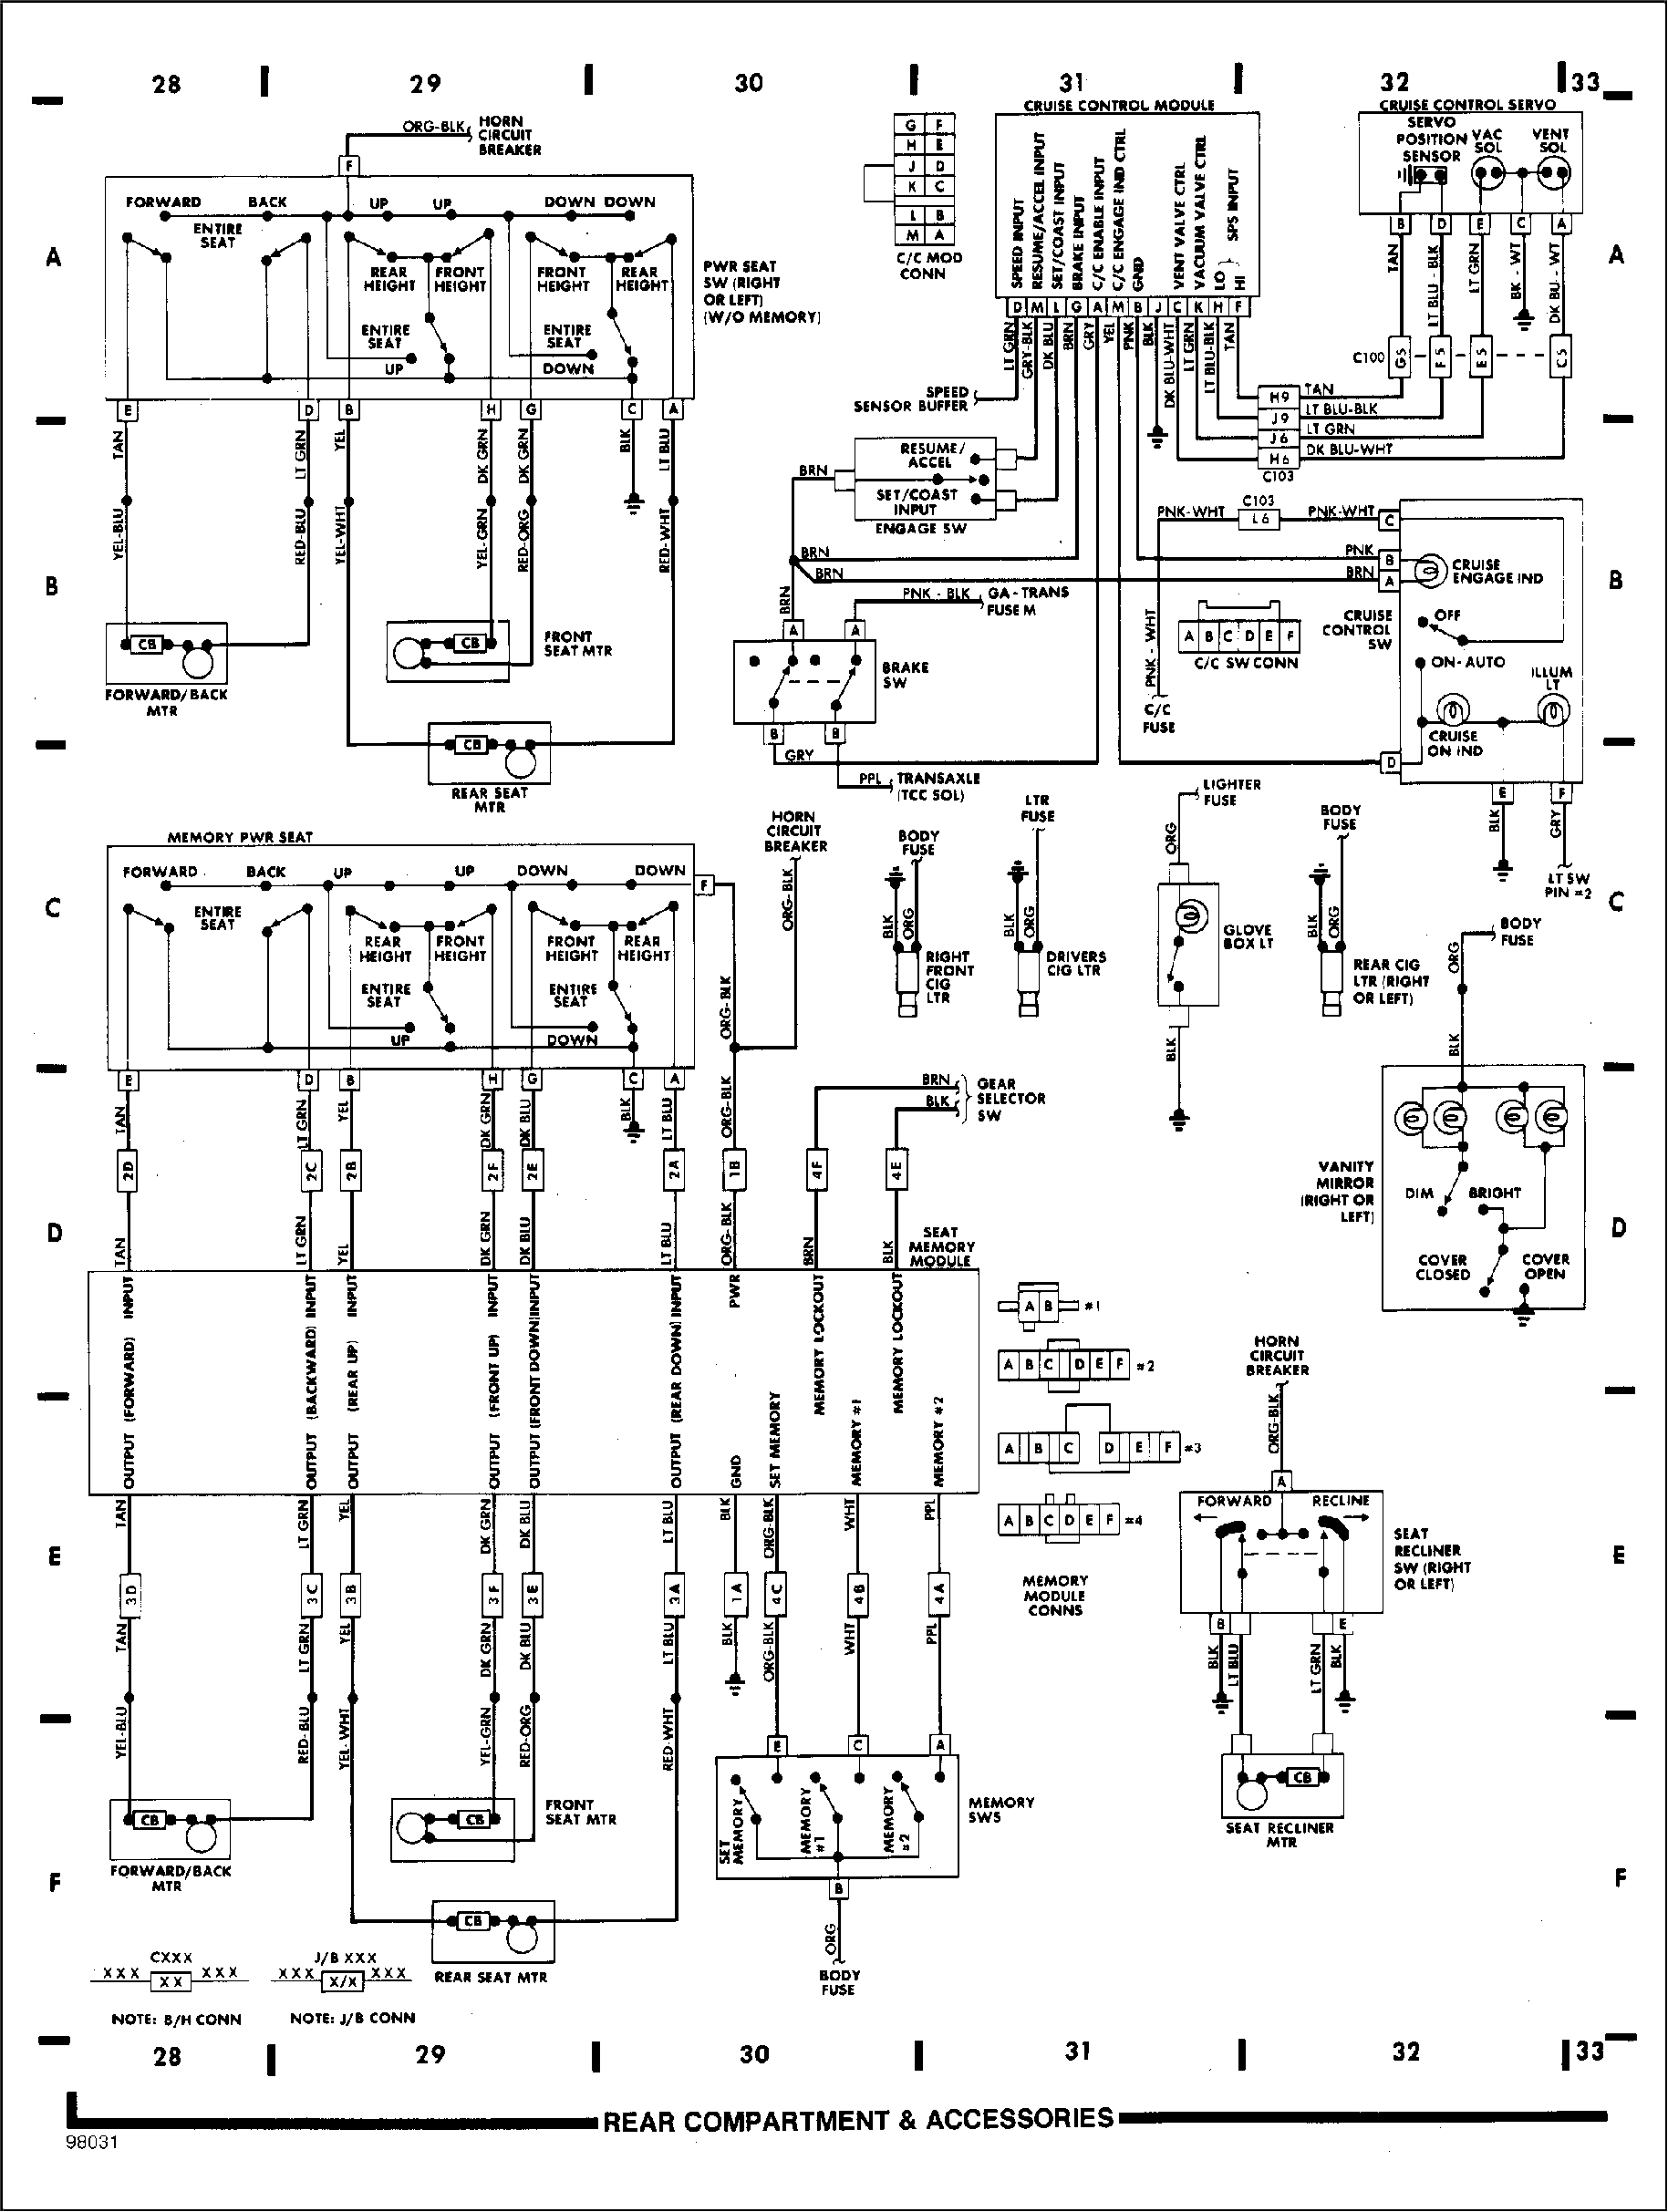 Rear-Compartment-and-Accesories  Cadillac Brougham Fuse Box Diagram on 2004 grand am fuse diagram, cadillac brake line diagram, cadillac belt routing diagram, cadillac wiring diagrams, cadillac distributor diagram, 2003 cadillac cts parts diagram, cadillac starter diagram, cadillac escalade fuse box, 2003 escalade fuse diagram, cadillac wheel diagram, cadillac steering column diagram, cadillac hood latch diagram, cadillac heater core diagram, cadillac ac diagram, 2004 explorer fuse diagram, cadillac deville fuse box location, cadillac trunk pull down diagram, cadillac deville fuse diagram, 2007 escalade fuse diagram, cadillac engine diagram,